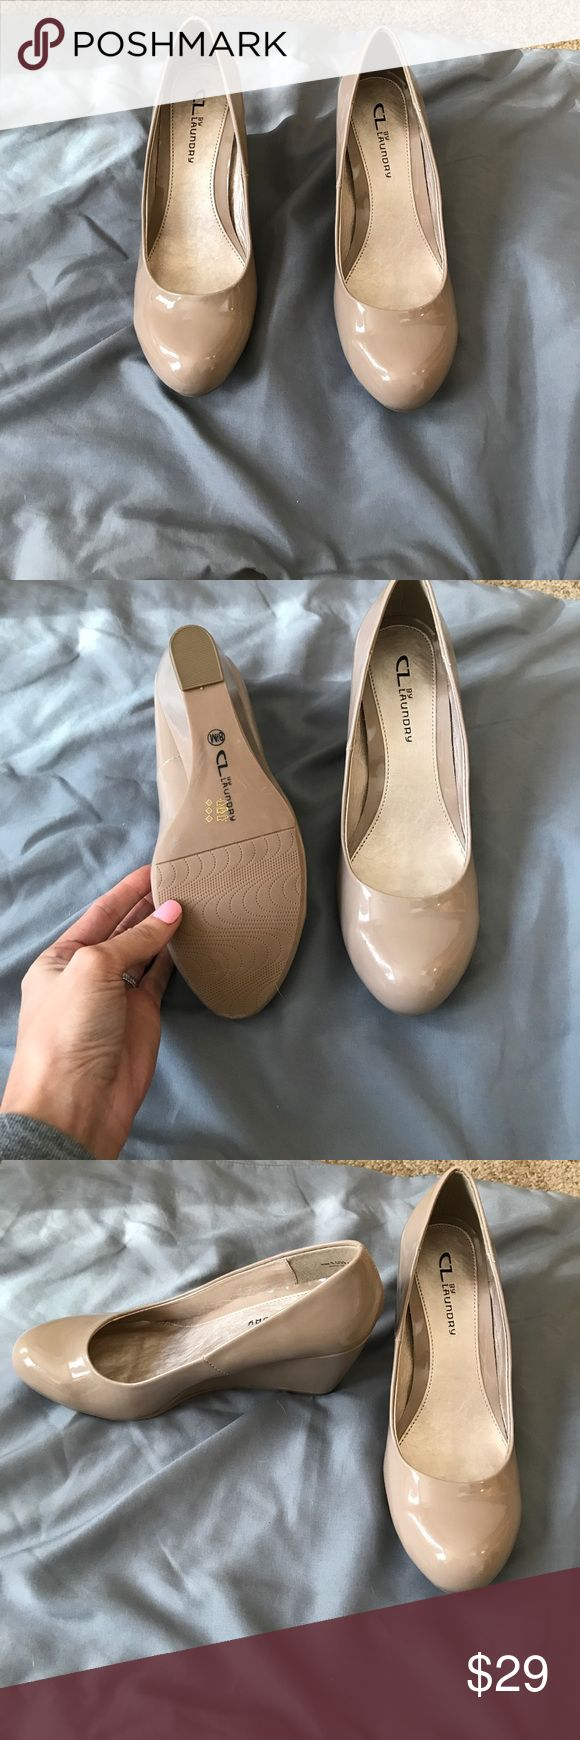 Chinese Laundry nude patent wedges Chinese Laundry nude patent leather wedges. Size 8.5. Never worn. Chinese Laundry Shoes Wedges